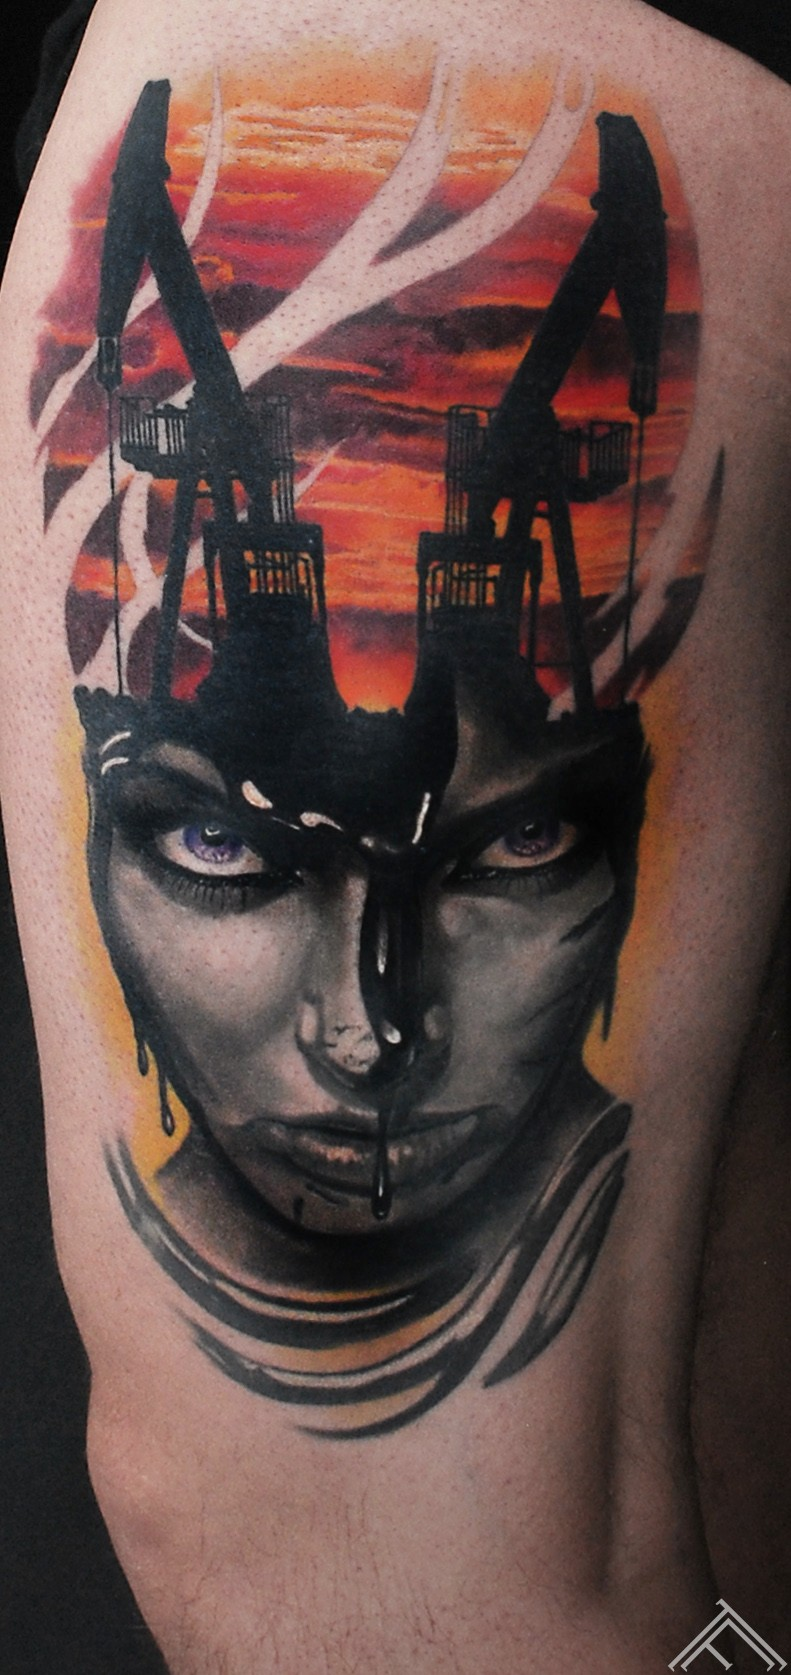 martinssilins-tattoo-tattoofrequency-woman-oil-portrait-riga-maksla-tetovejums